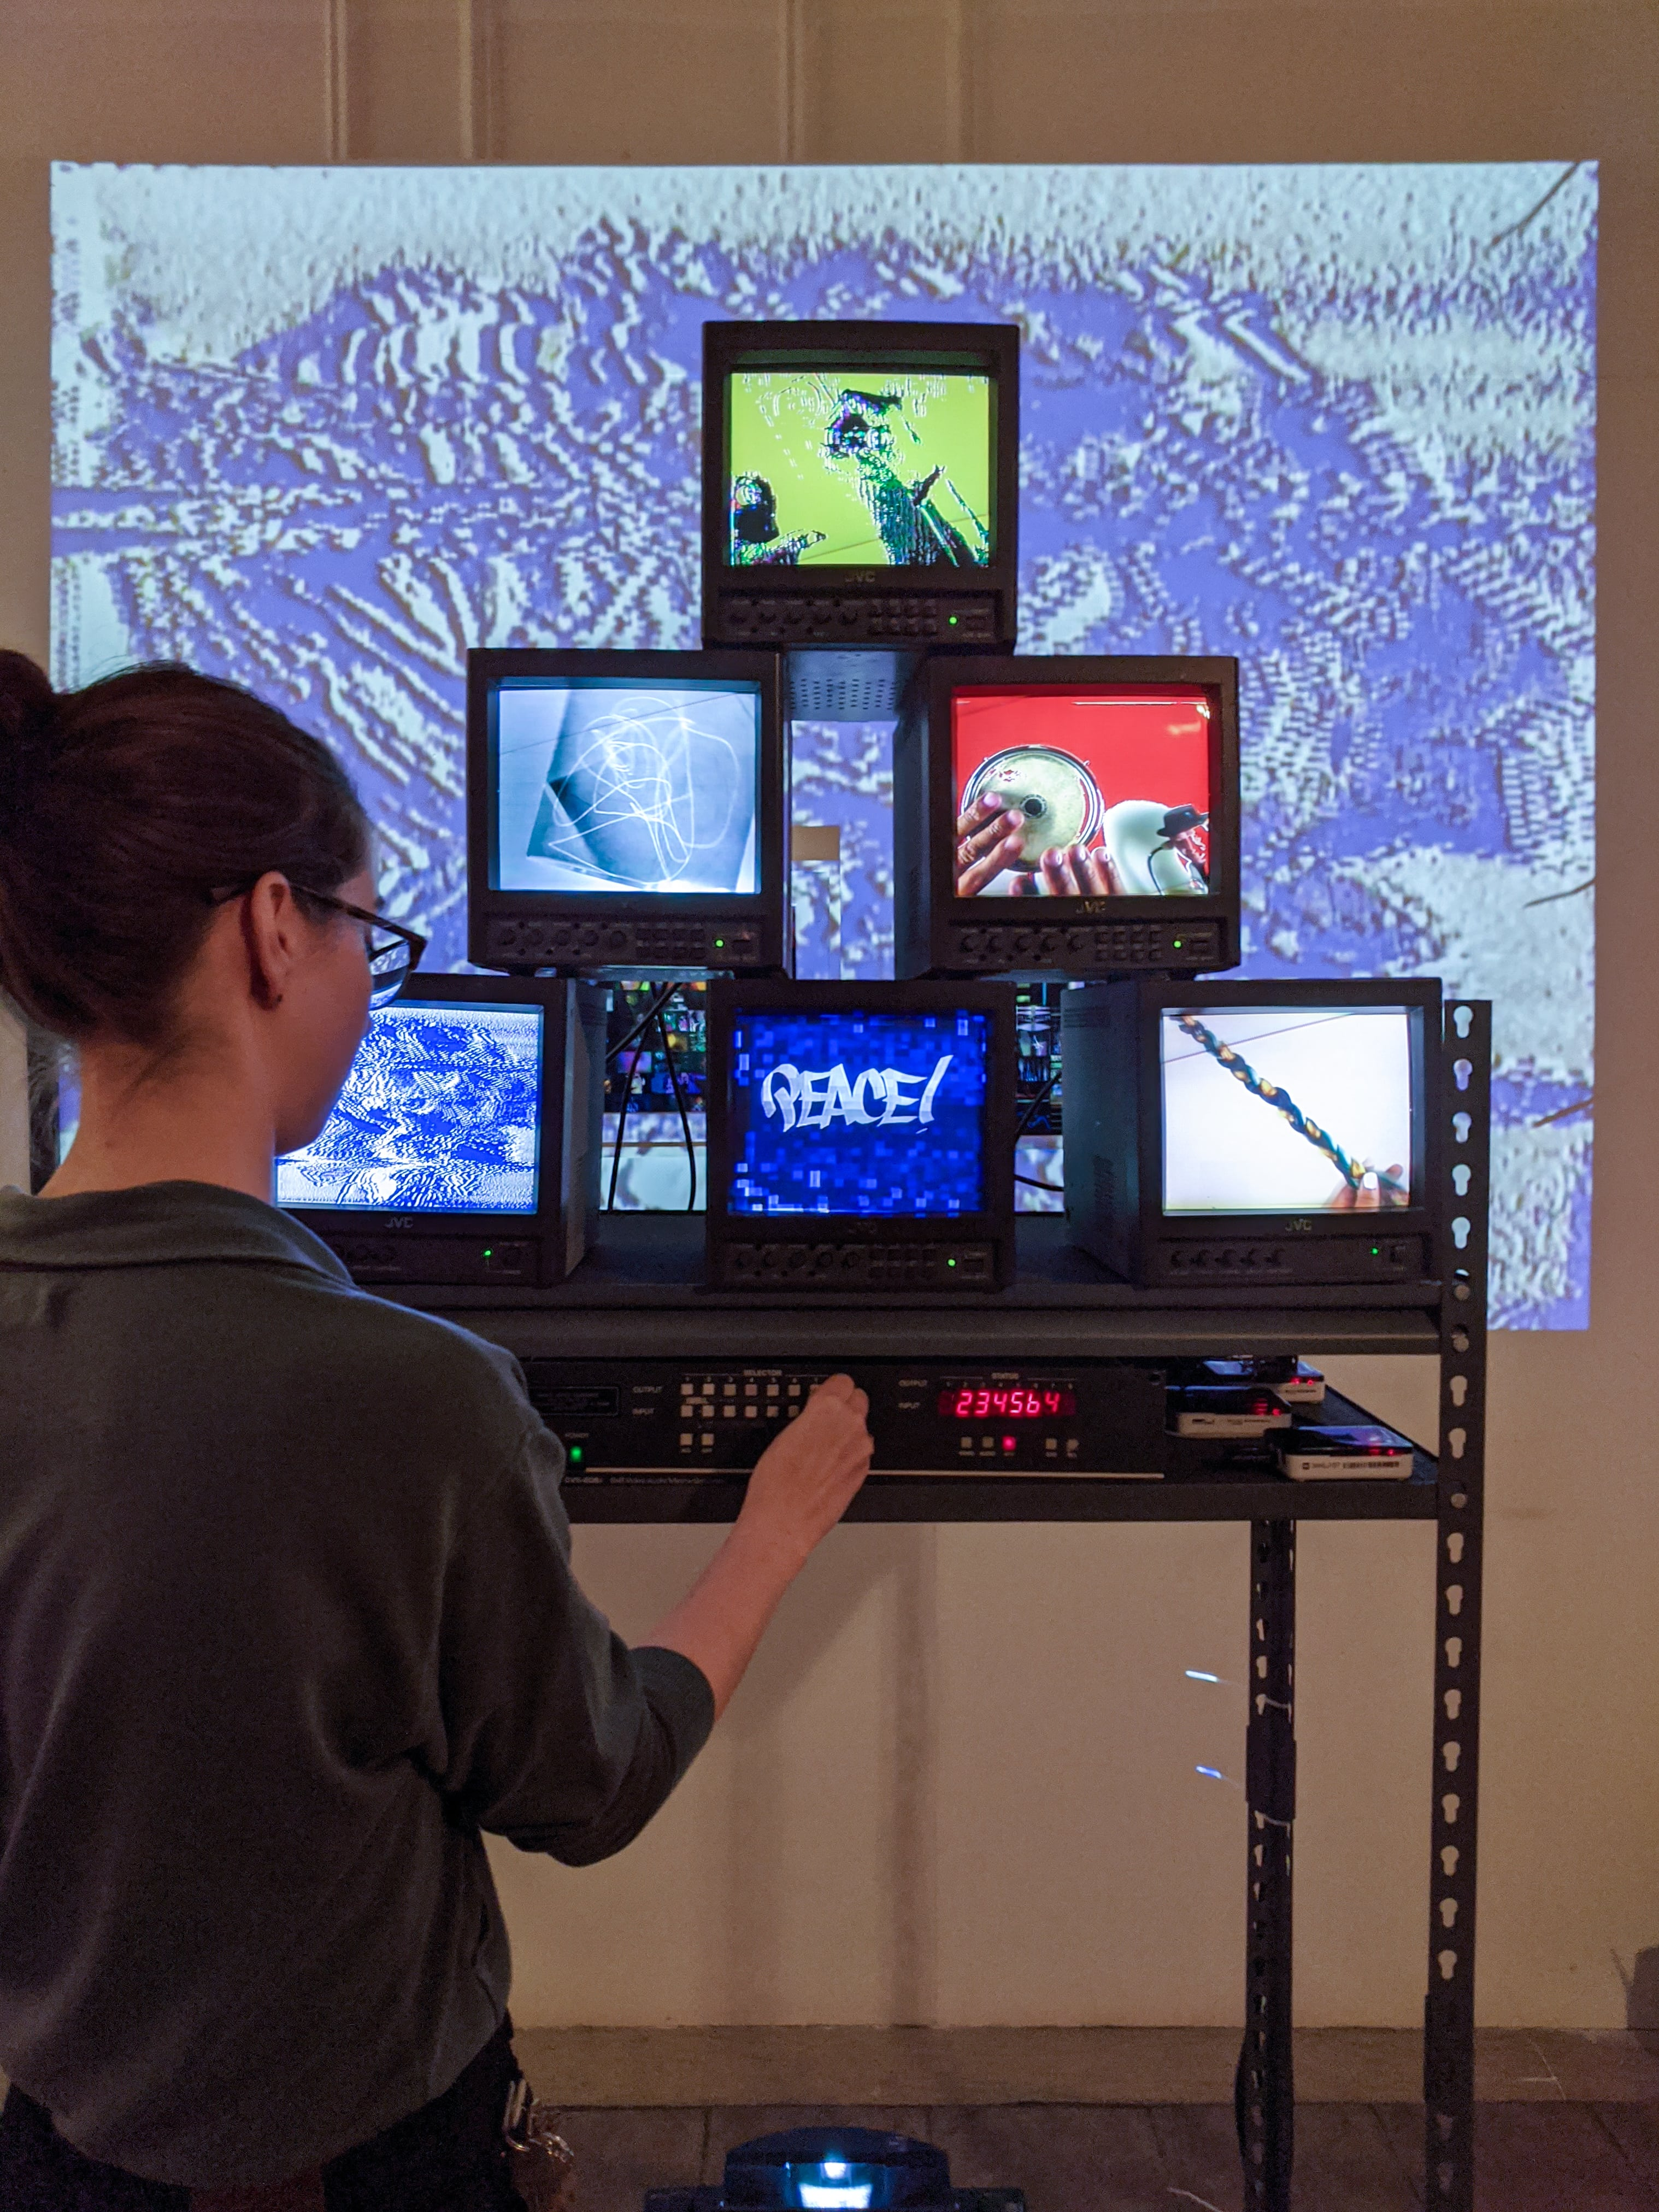 Elena B. Hall puts finishing touches on a video sculpture, with screens displaying colorful media art by various AFH AIR artists.